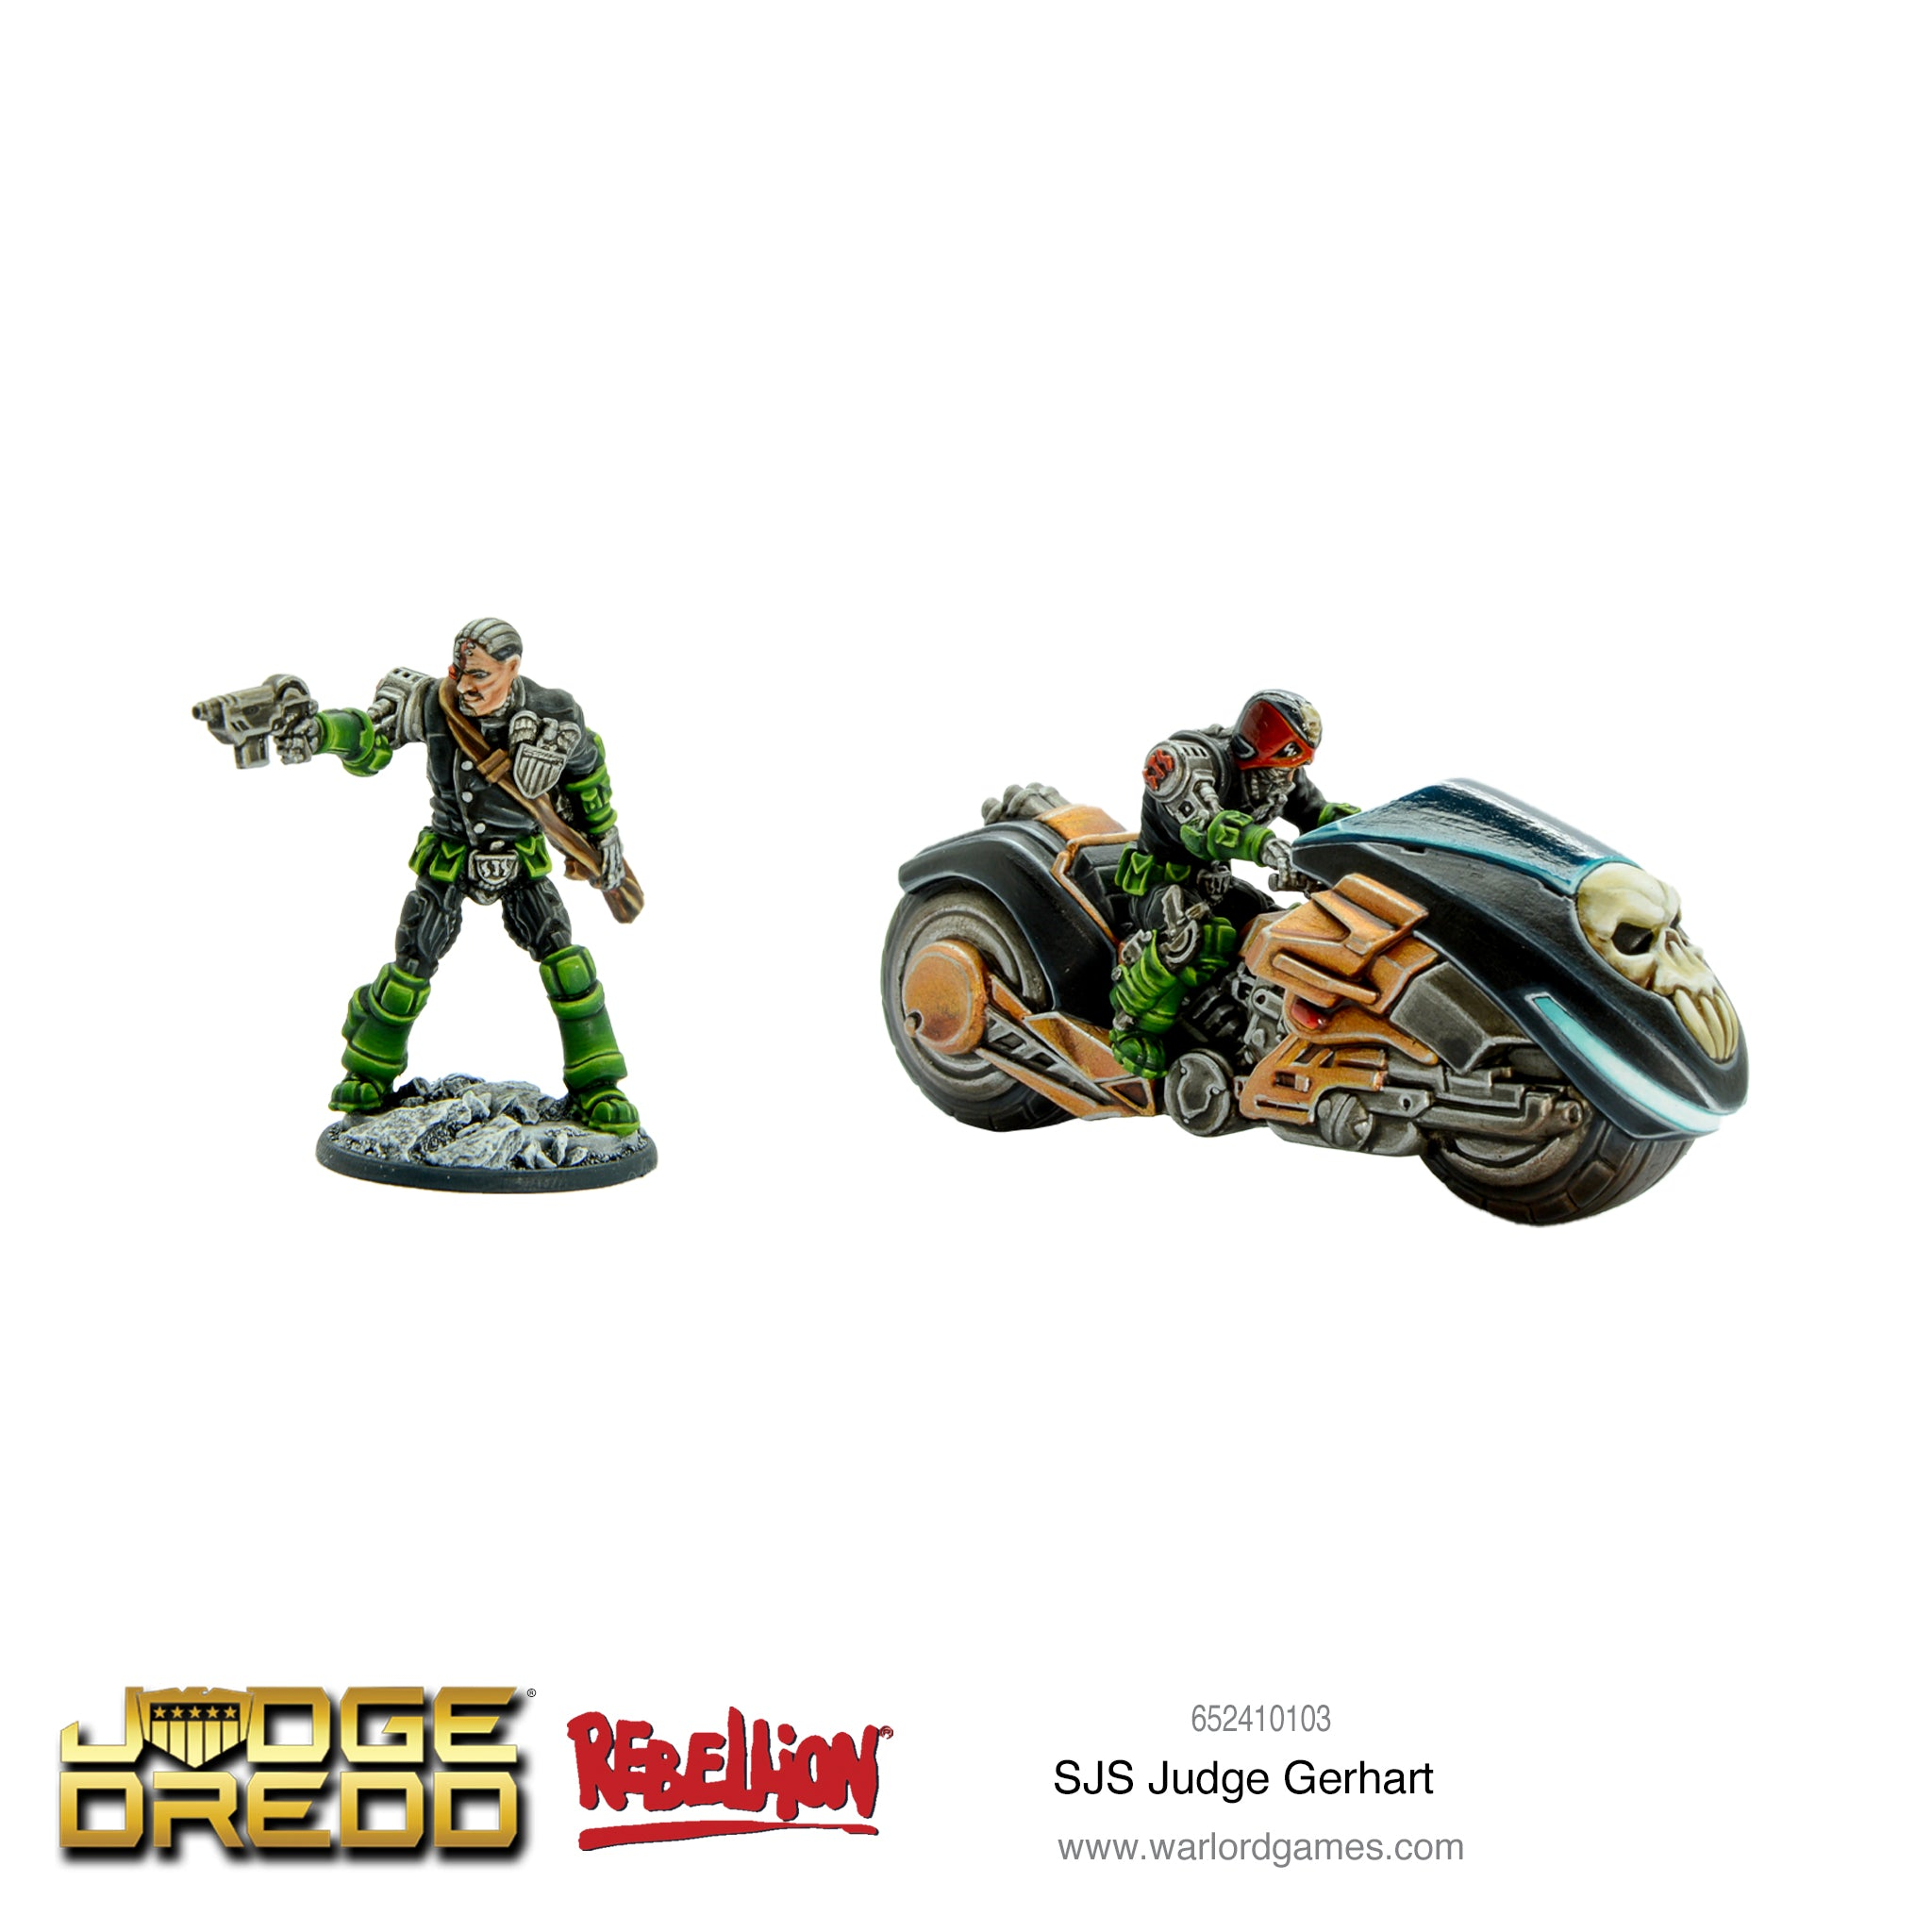 Judge Dredd: SJS Judge Gerhart